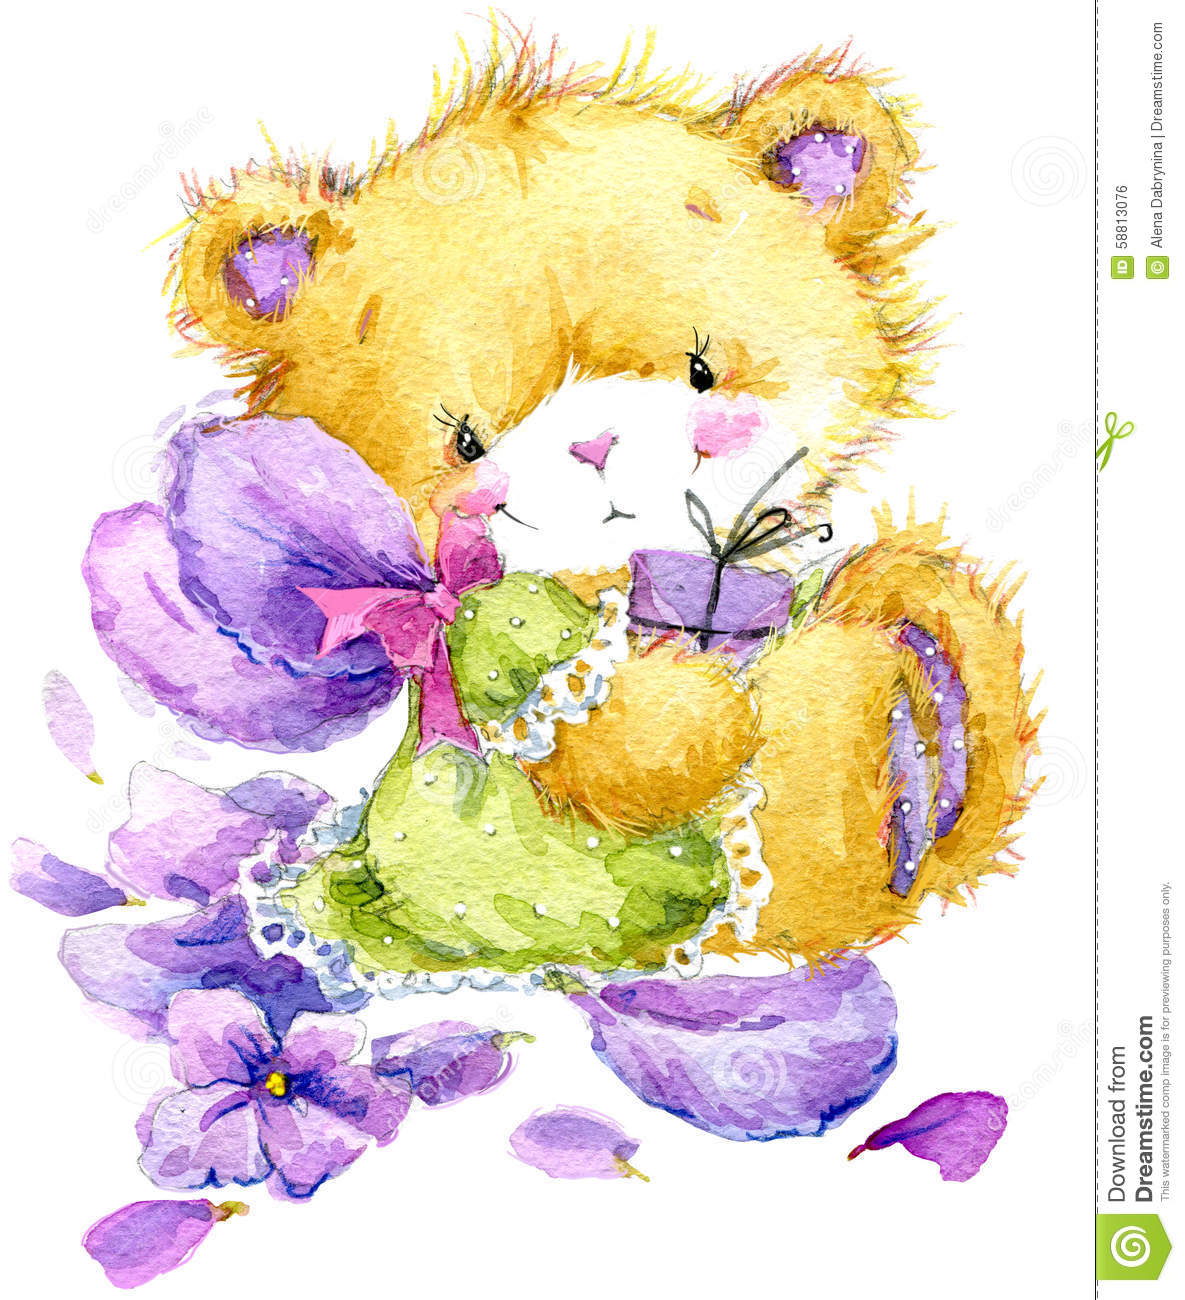 Toy Teddy bear and flower violet. watercolor illustration